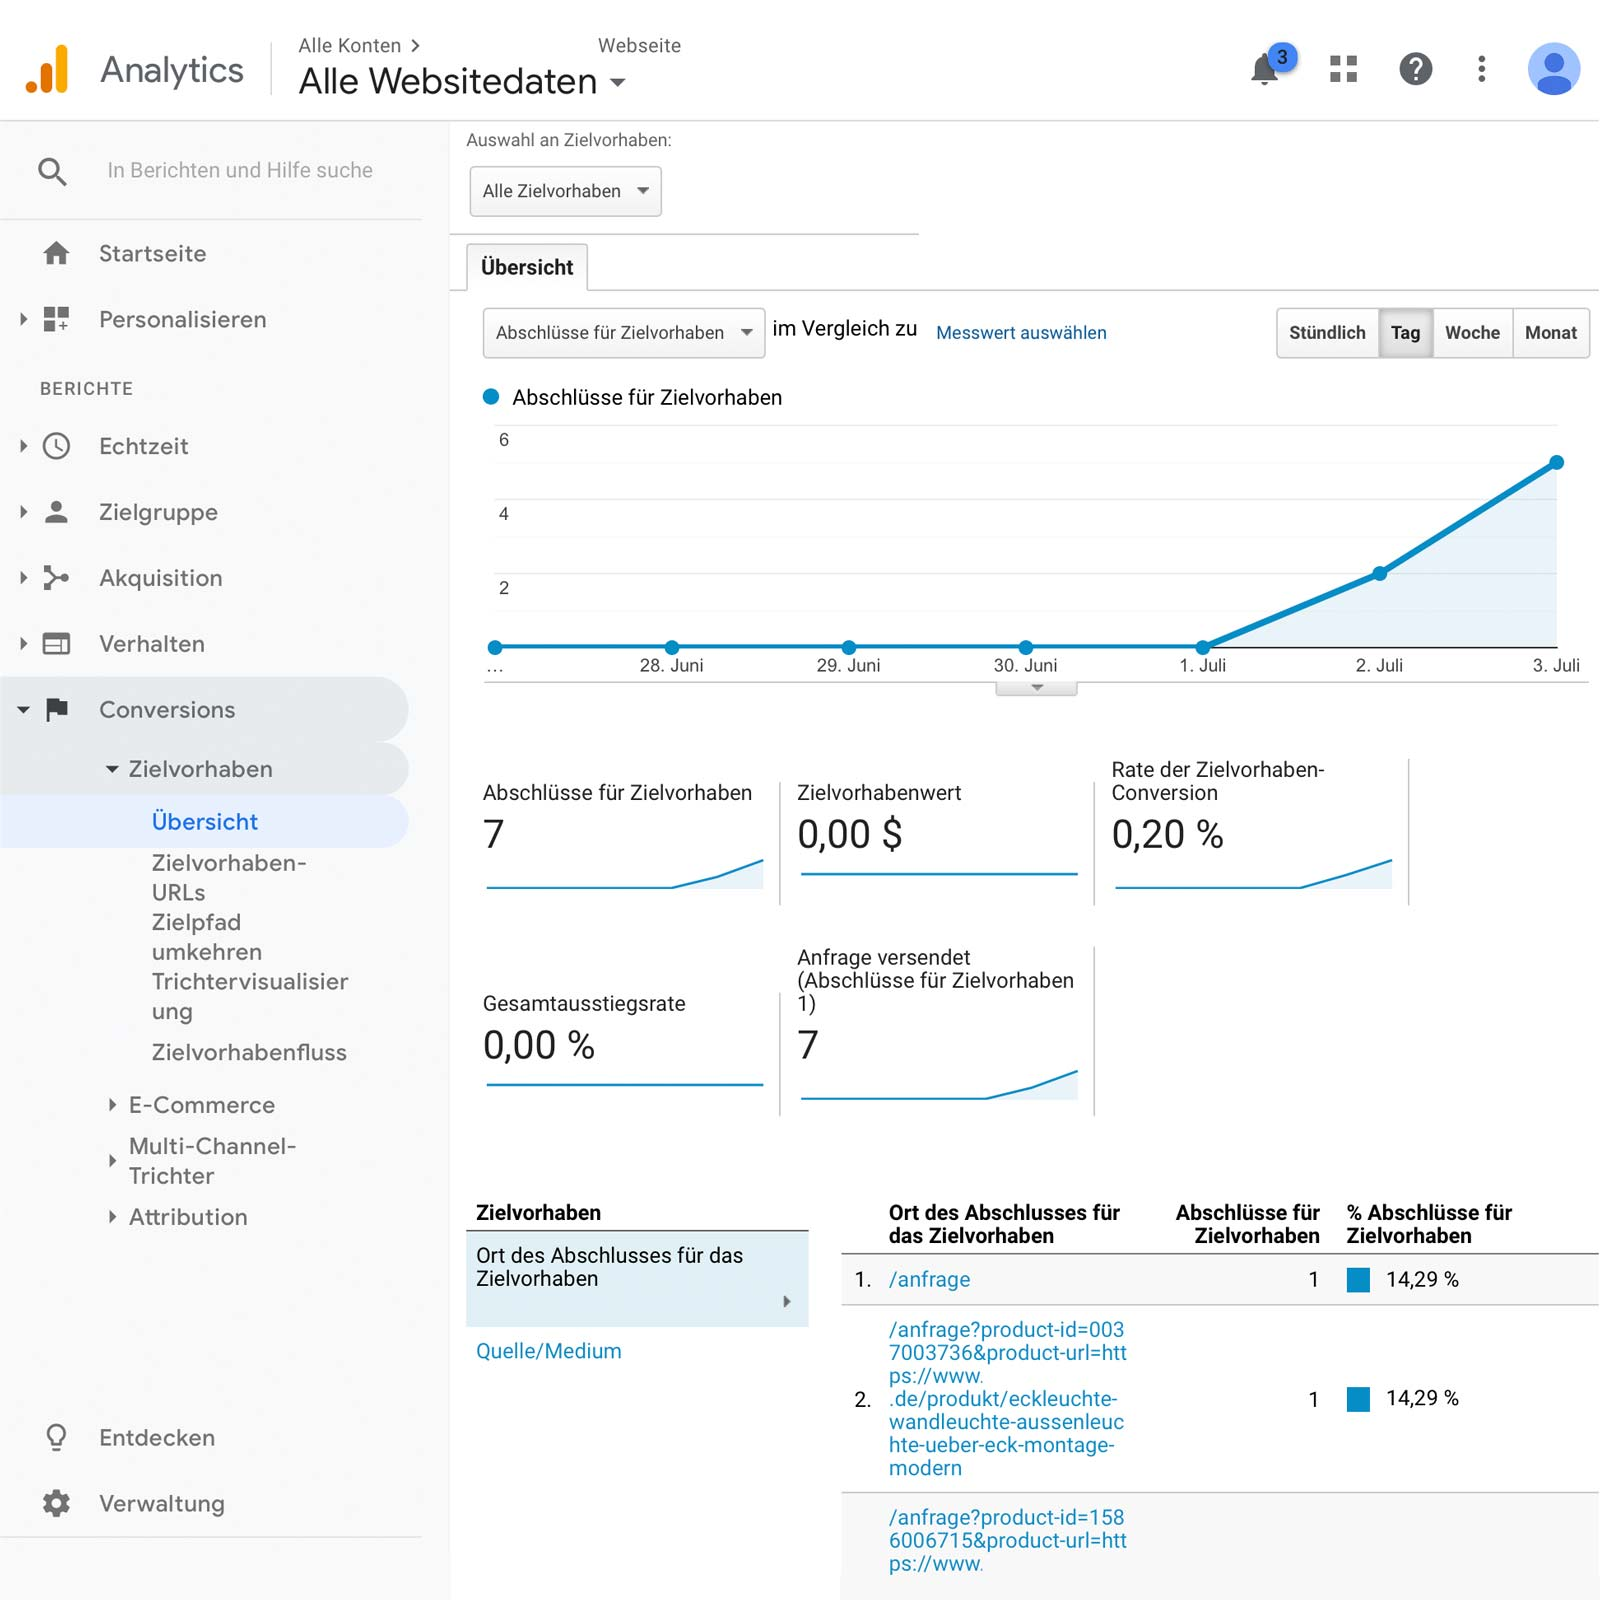 Contact Form 7 Formulare in Google Analytics tracken